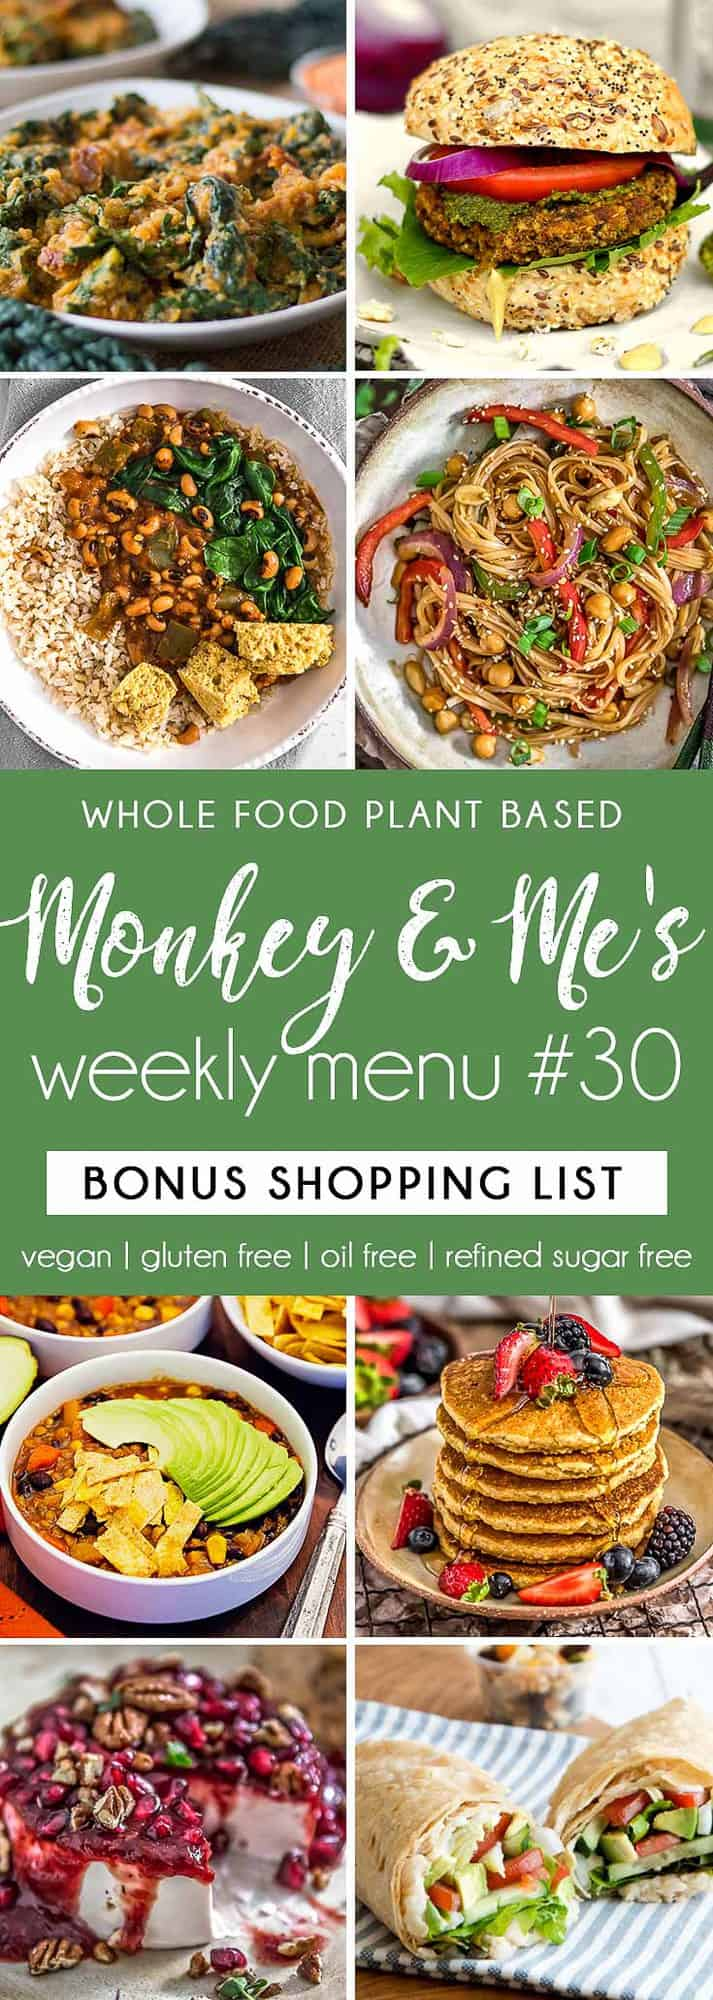 Monkey and Me's Menu 30 featuring 8 recipes